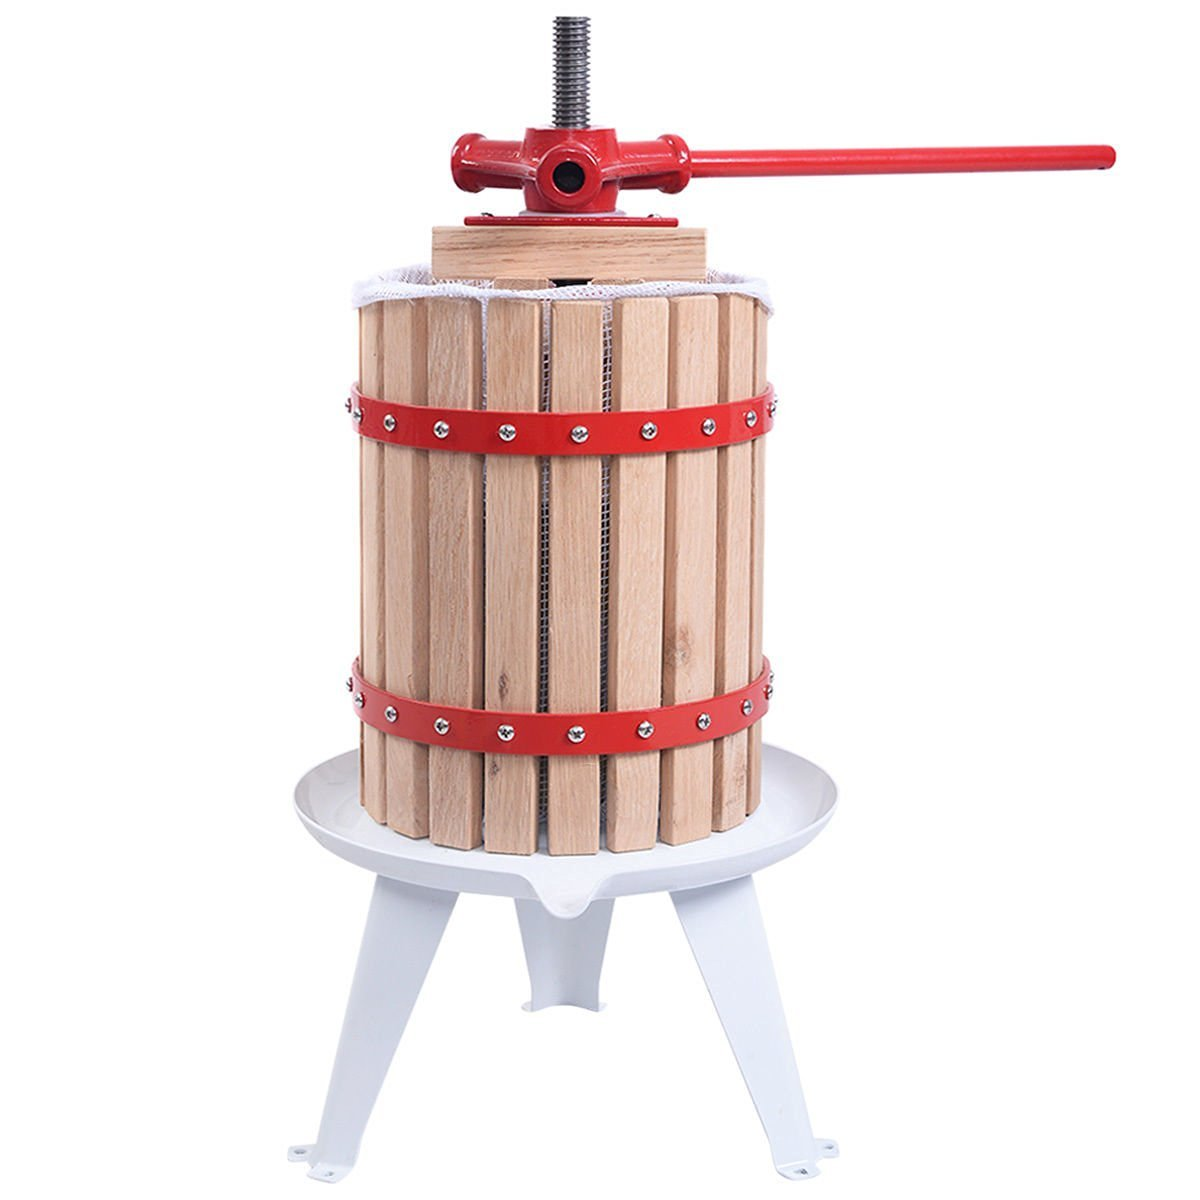 Useful UH-FP165 6L 1.6 Gal Solid Wood Basket Fruit and Wine Press Useful.